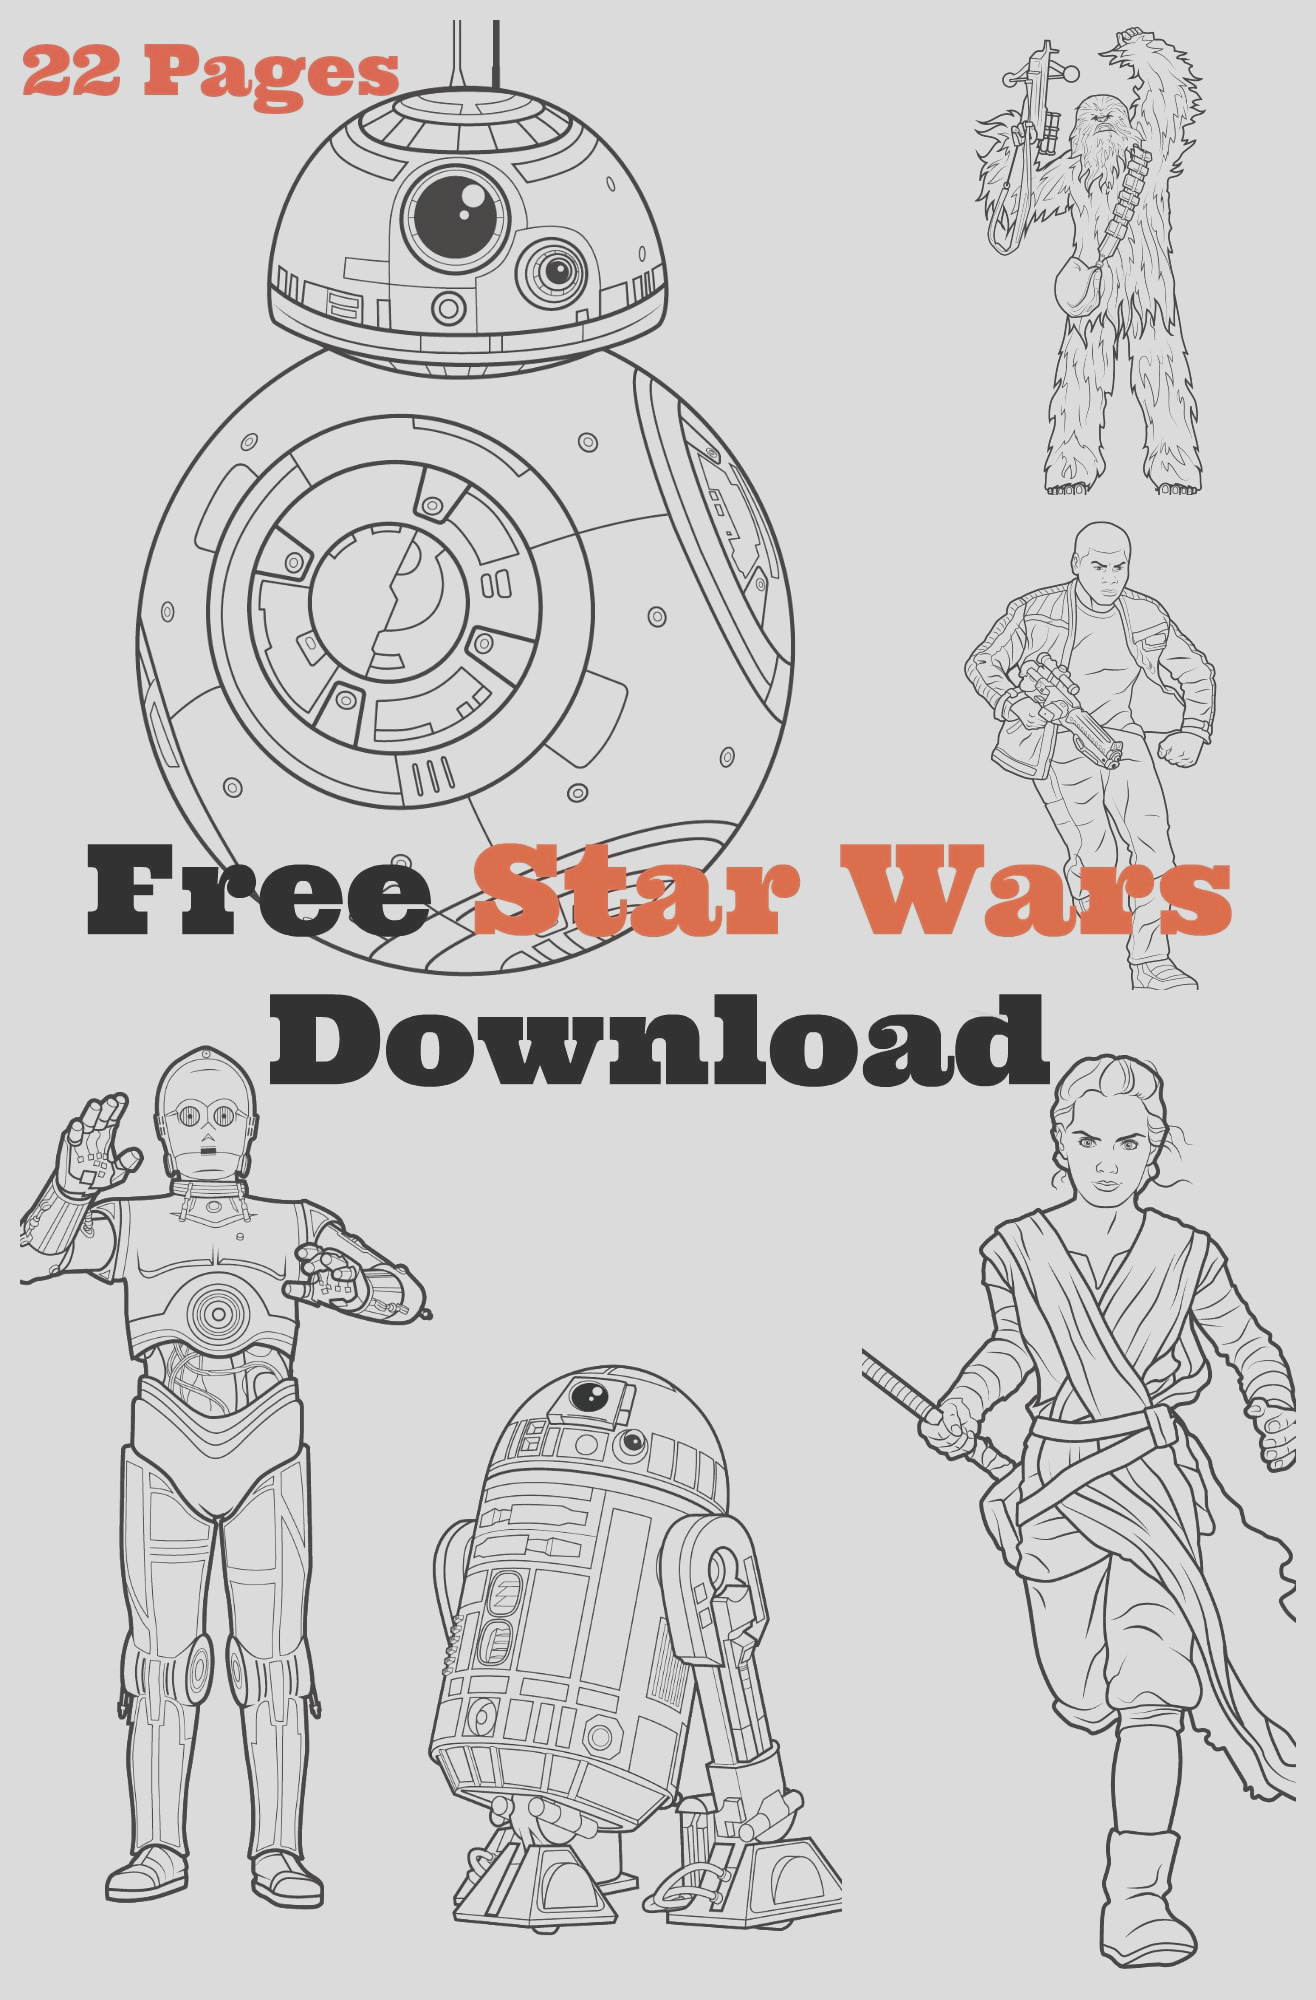 mega star wars free coloring activity kit here